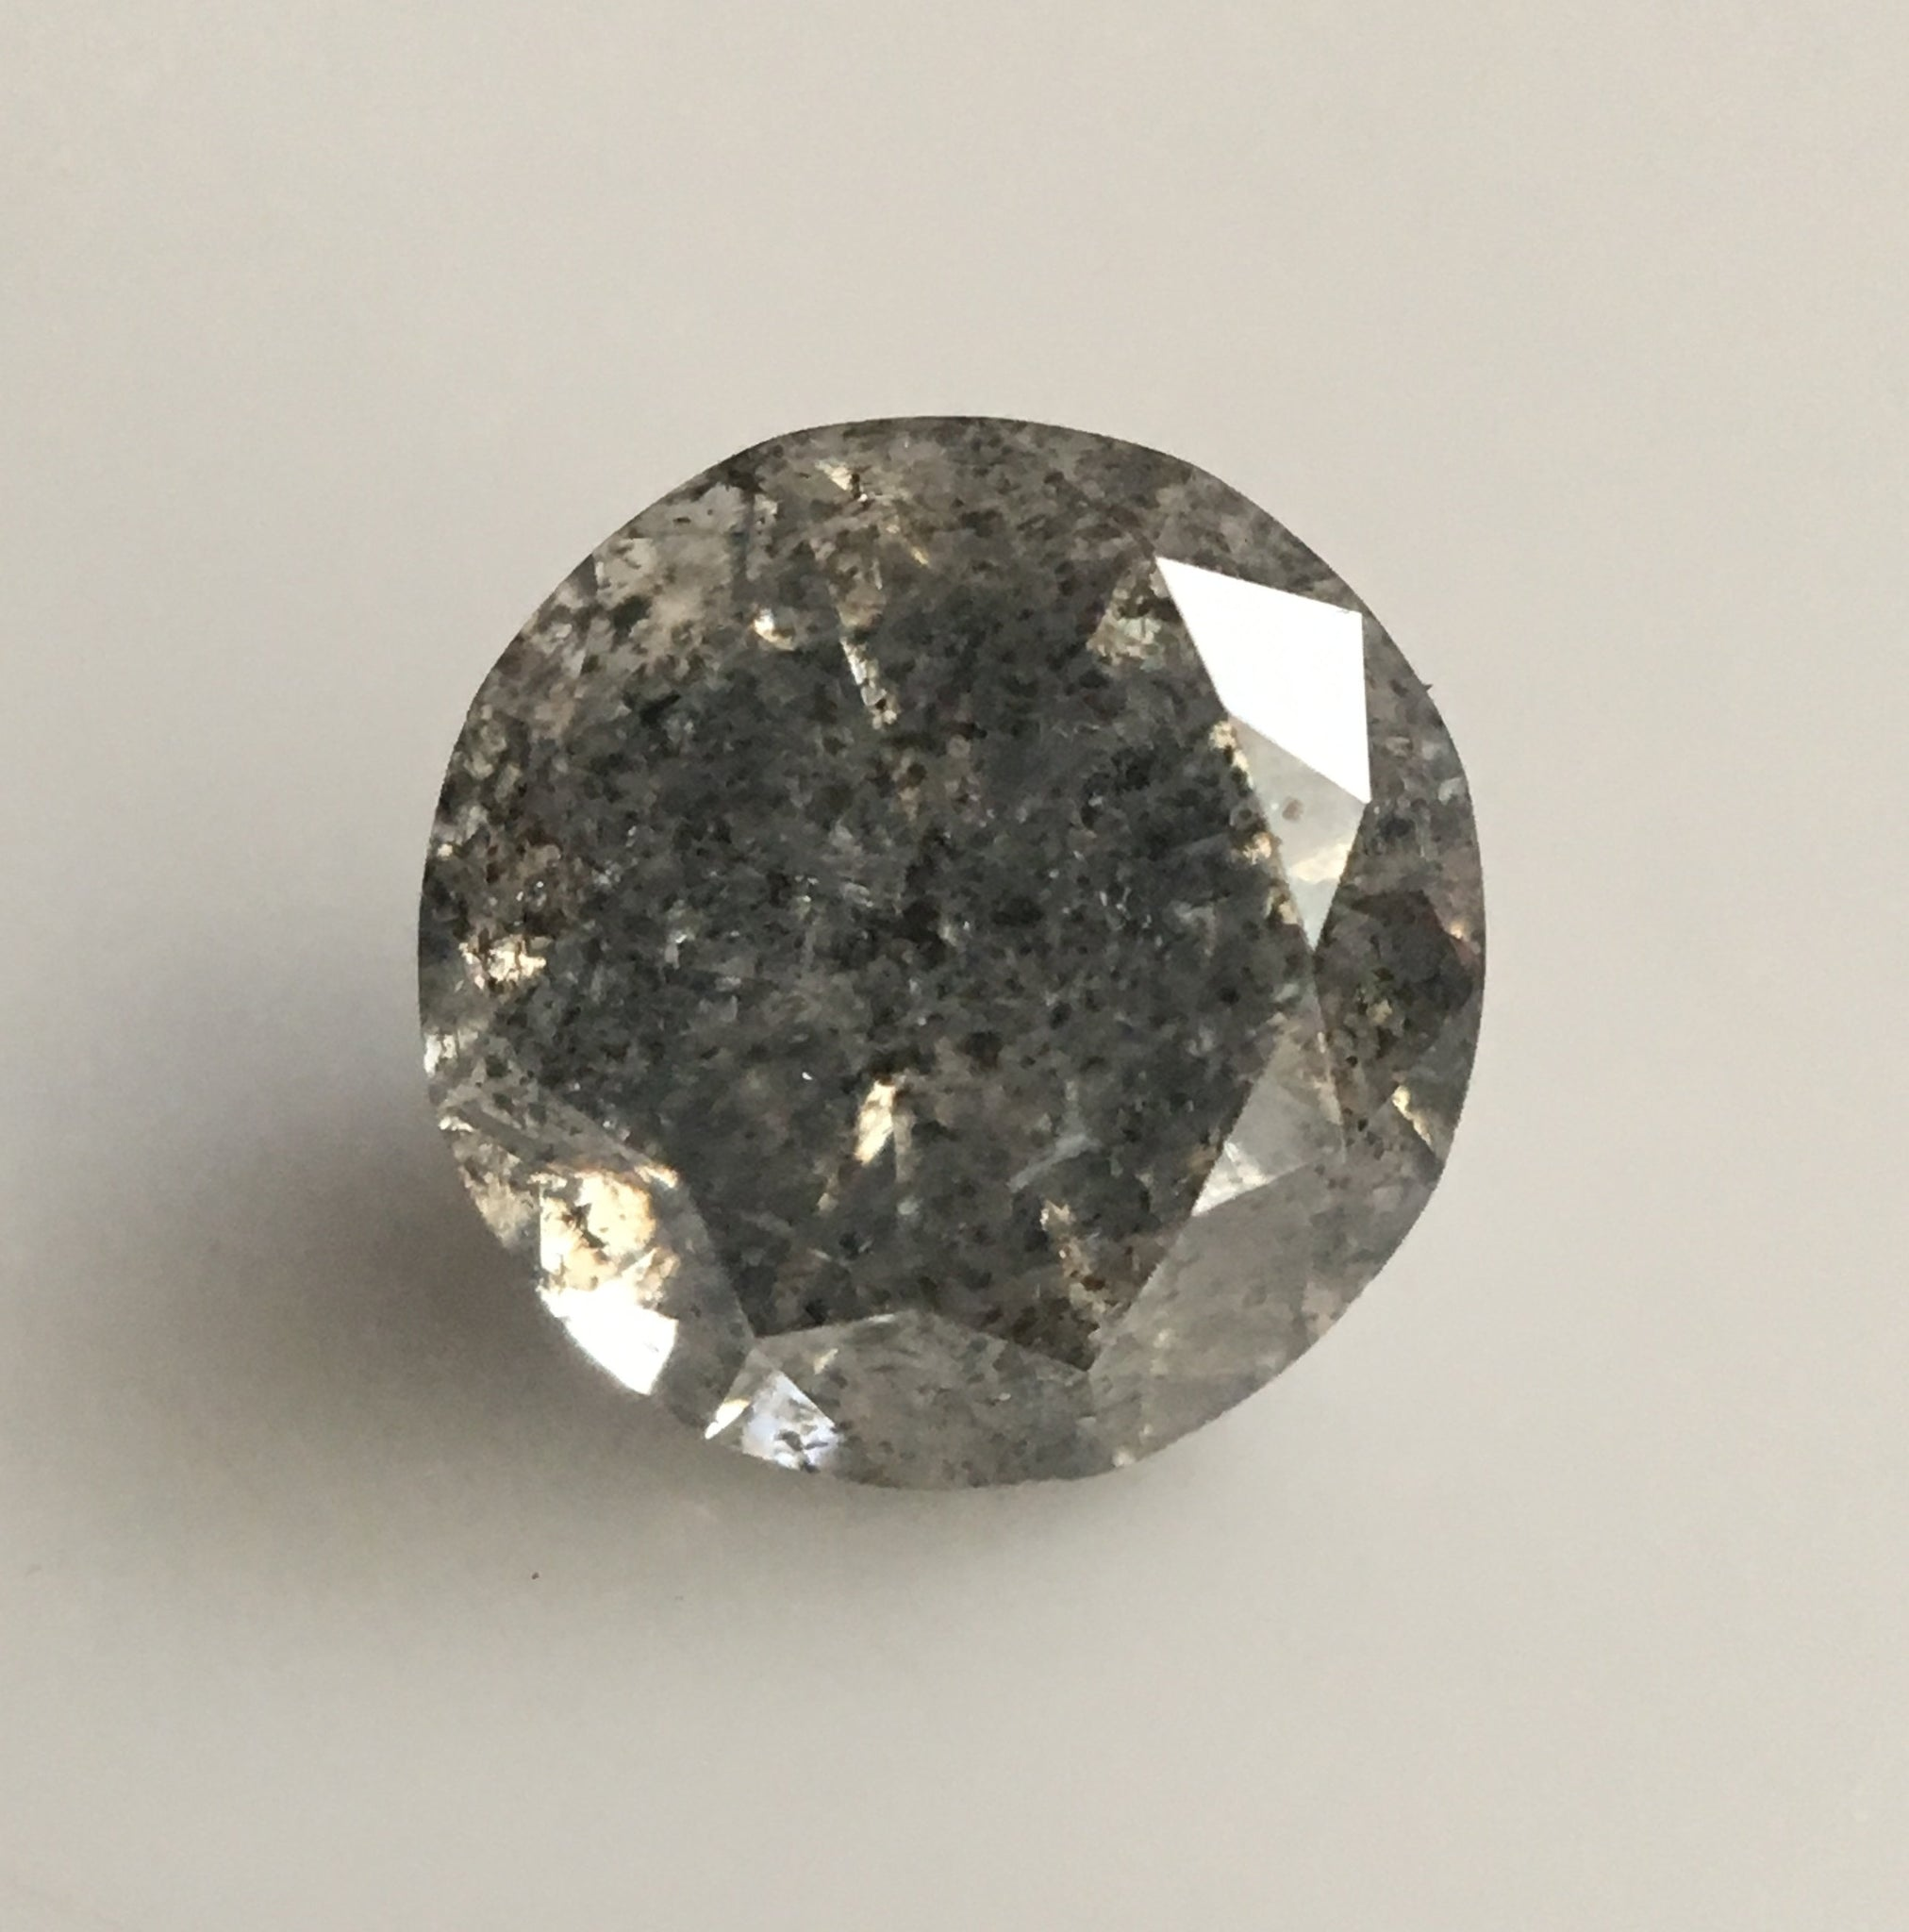 0.46 Ct Salt and Pepper Round Brilliant Cut Natural Loose Diamond, 4.90 mm X 3.18 mm Gray Color Natural Loose Diamond SJ34/94 - Amba Jewel